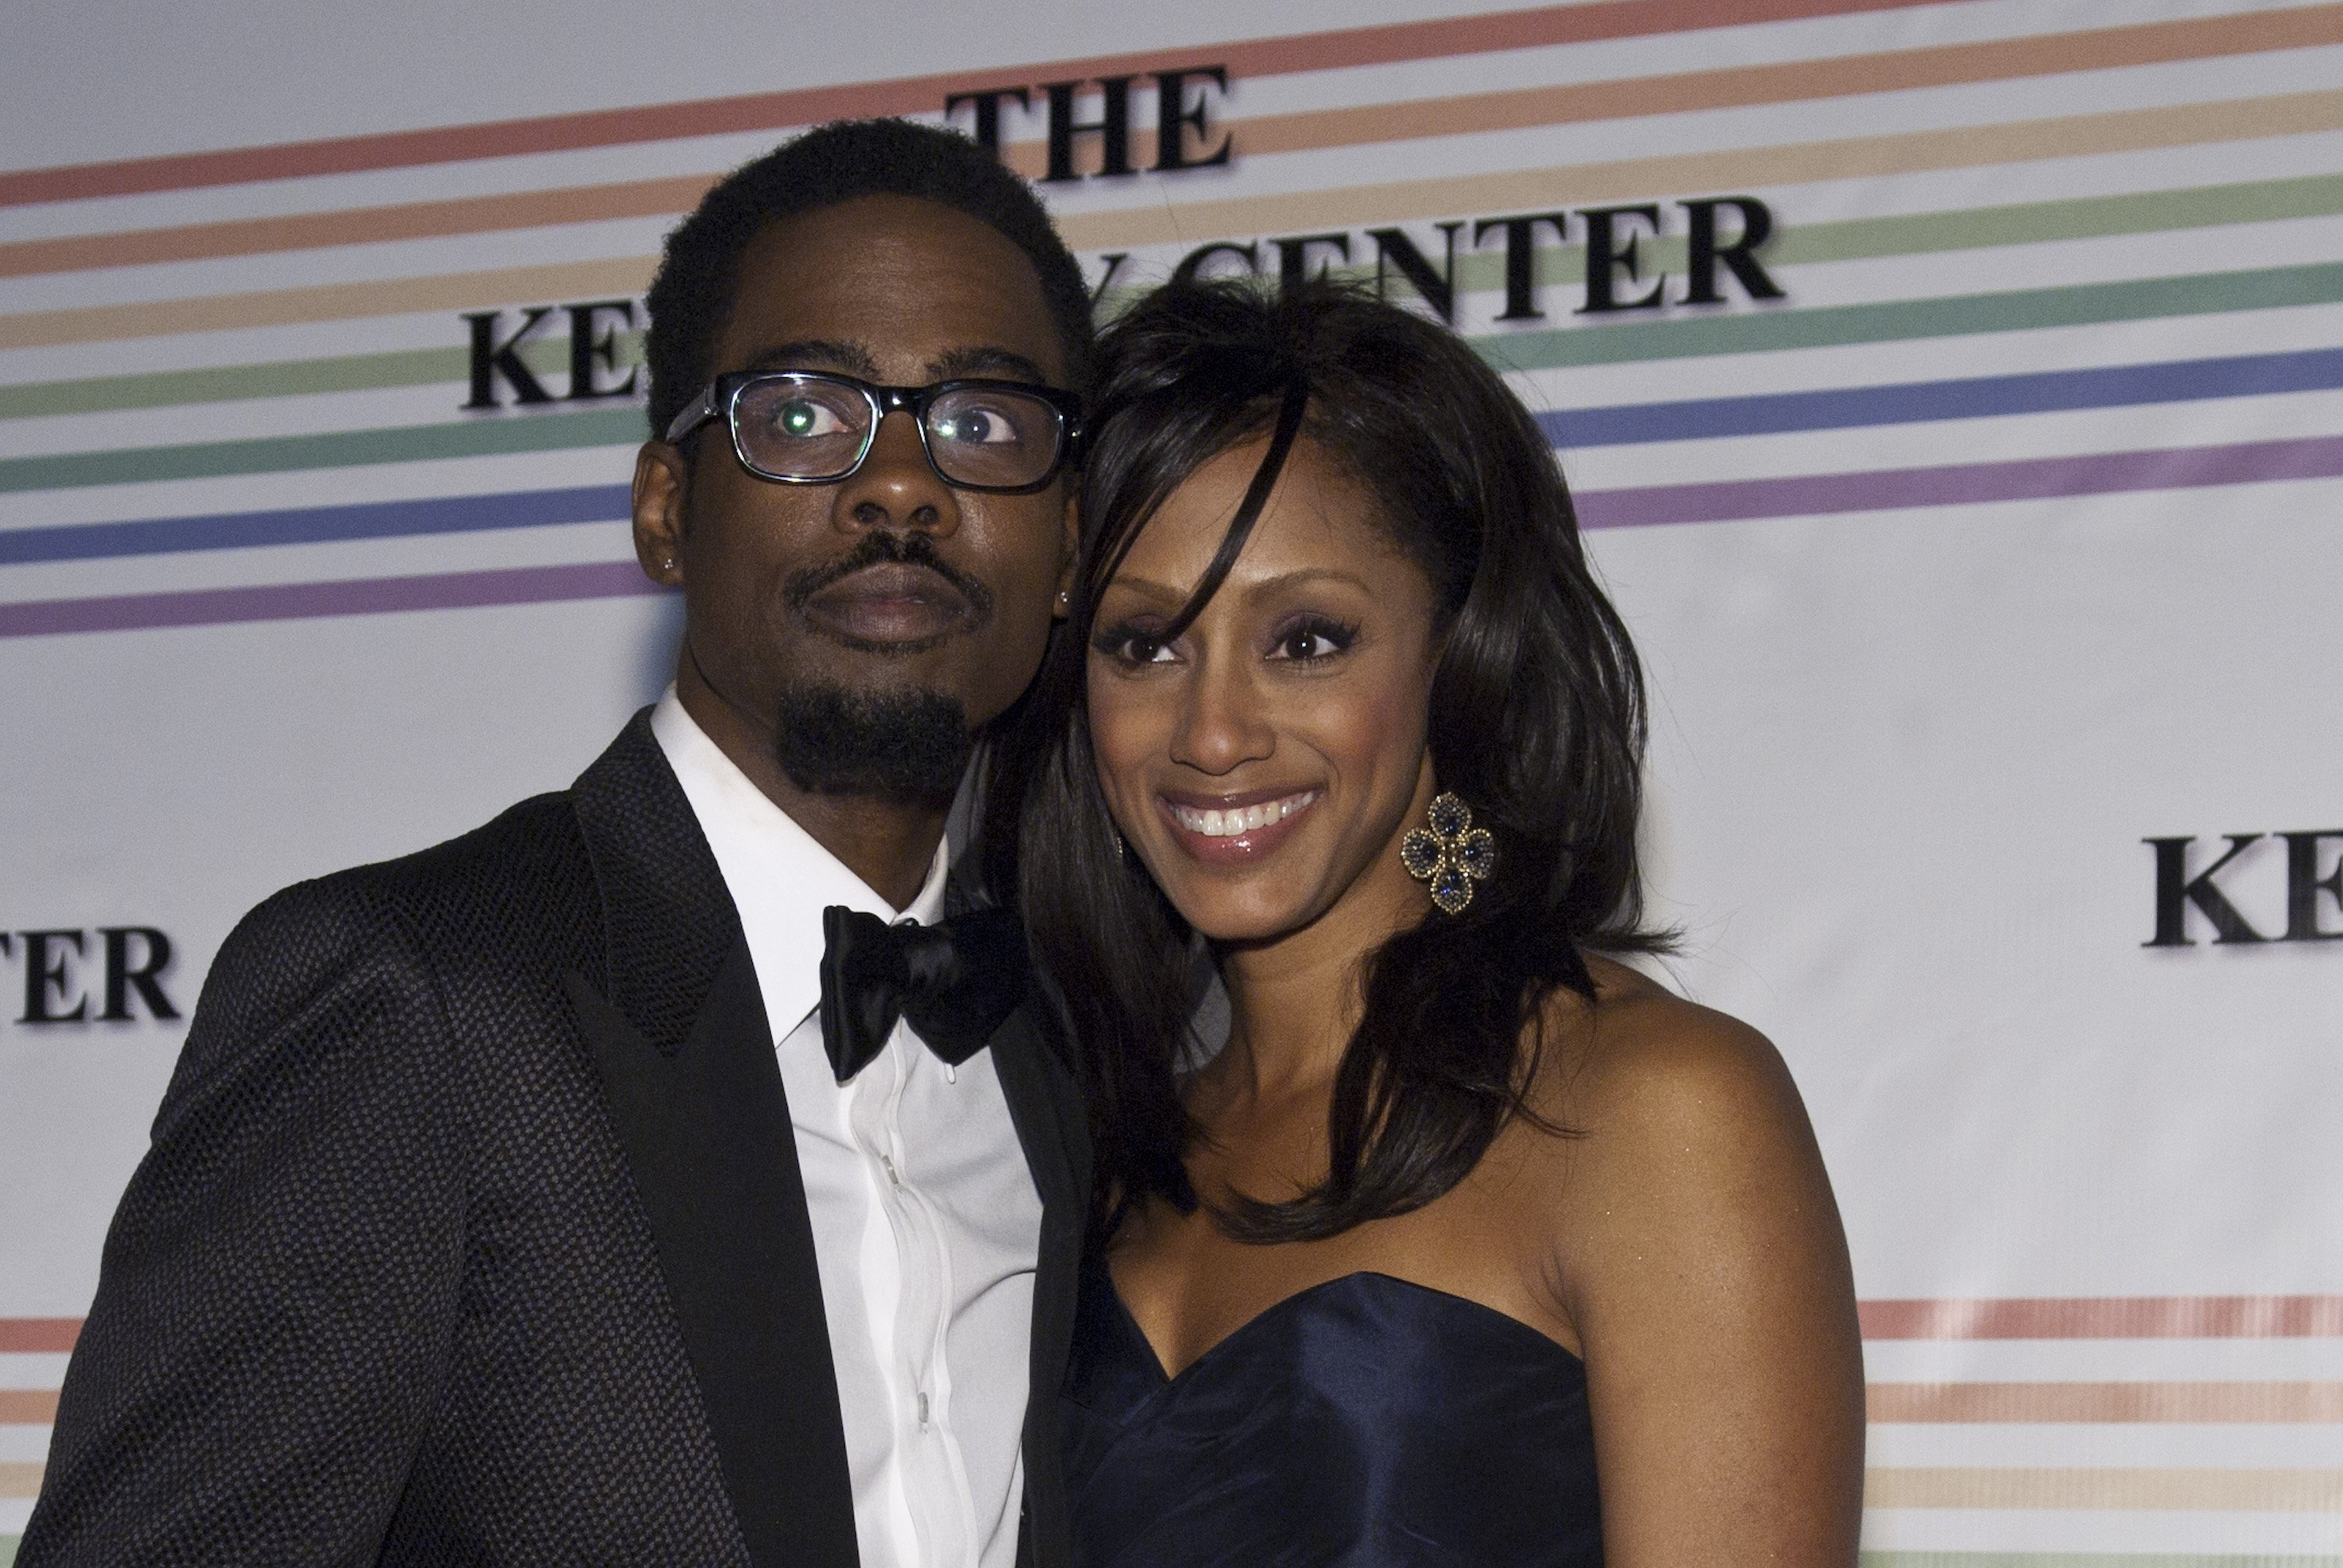 Chris Rock and ex-wife Malaak Compton-Rock during the 33rd Annual Kennedy Center Honors in December 2010. | Photo: Getty Images